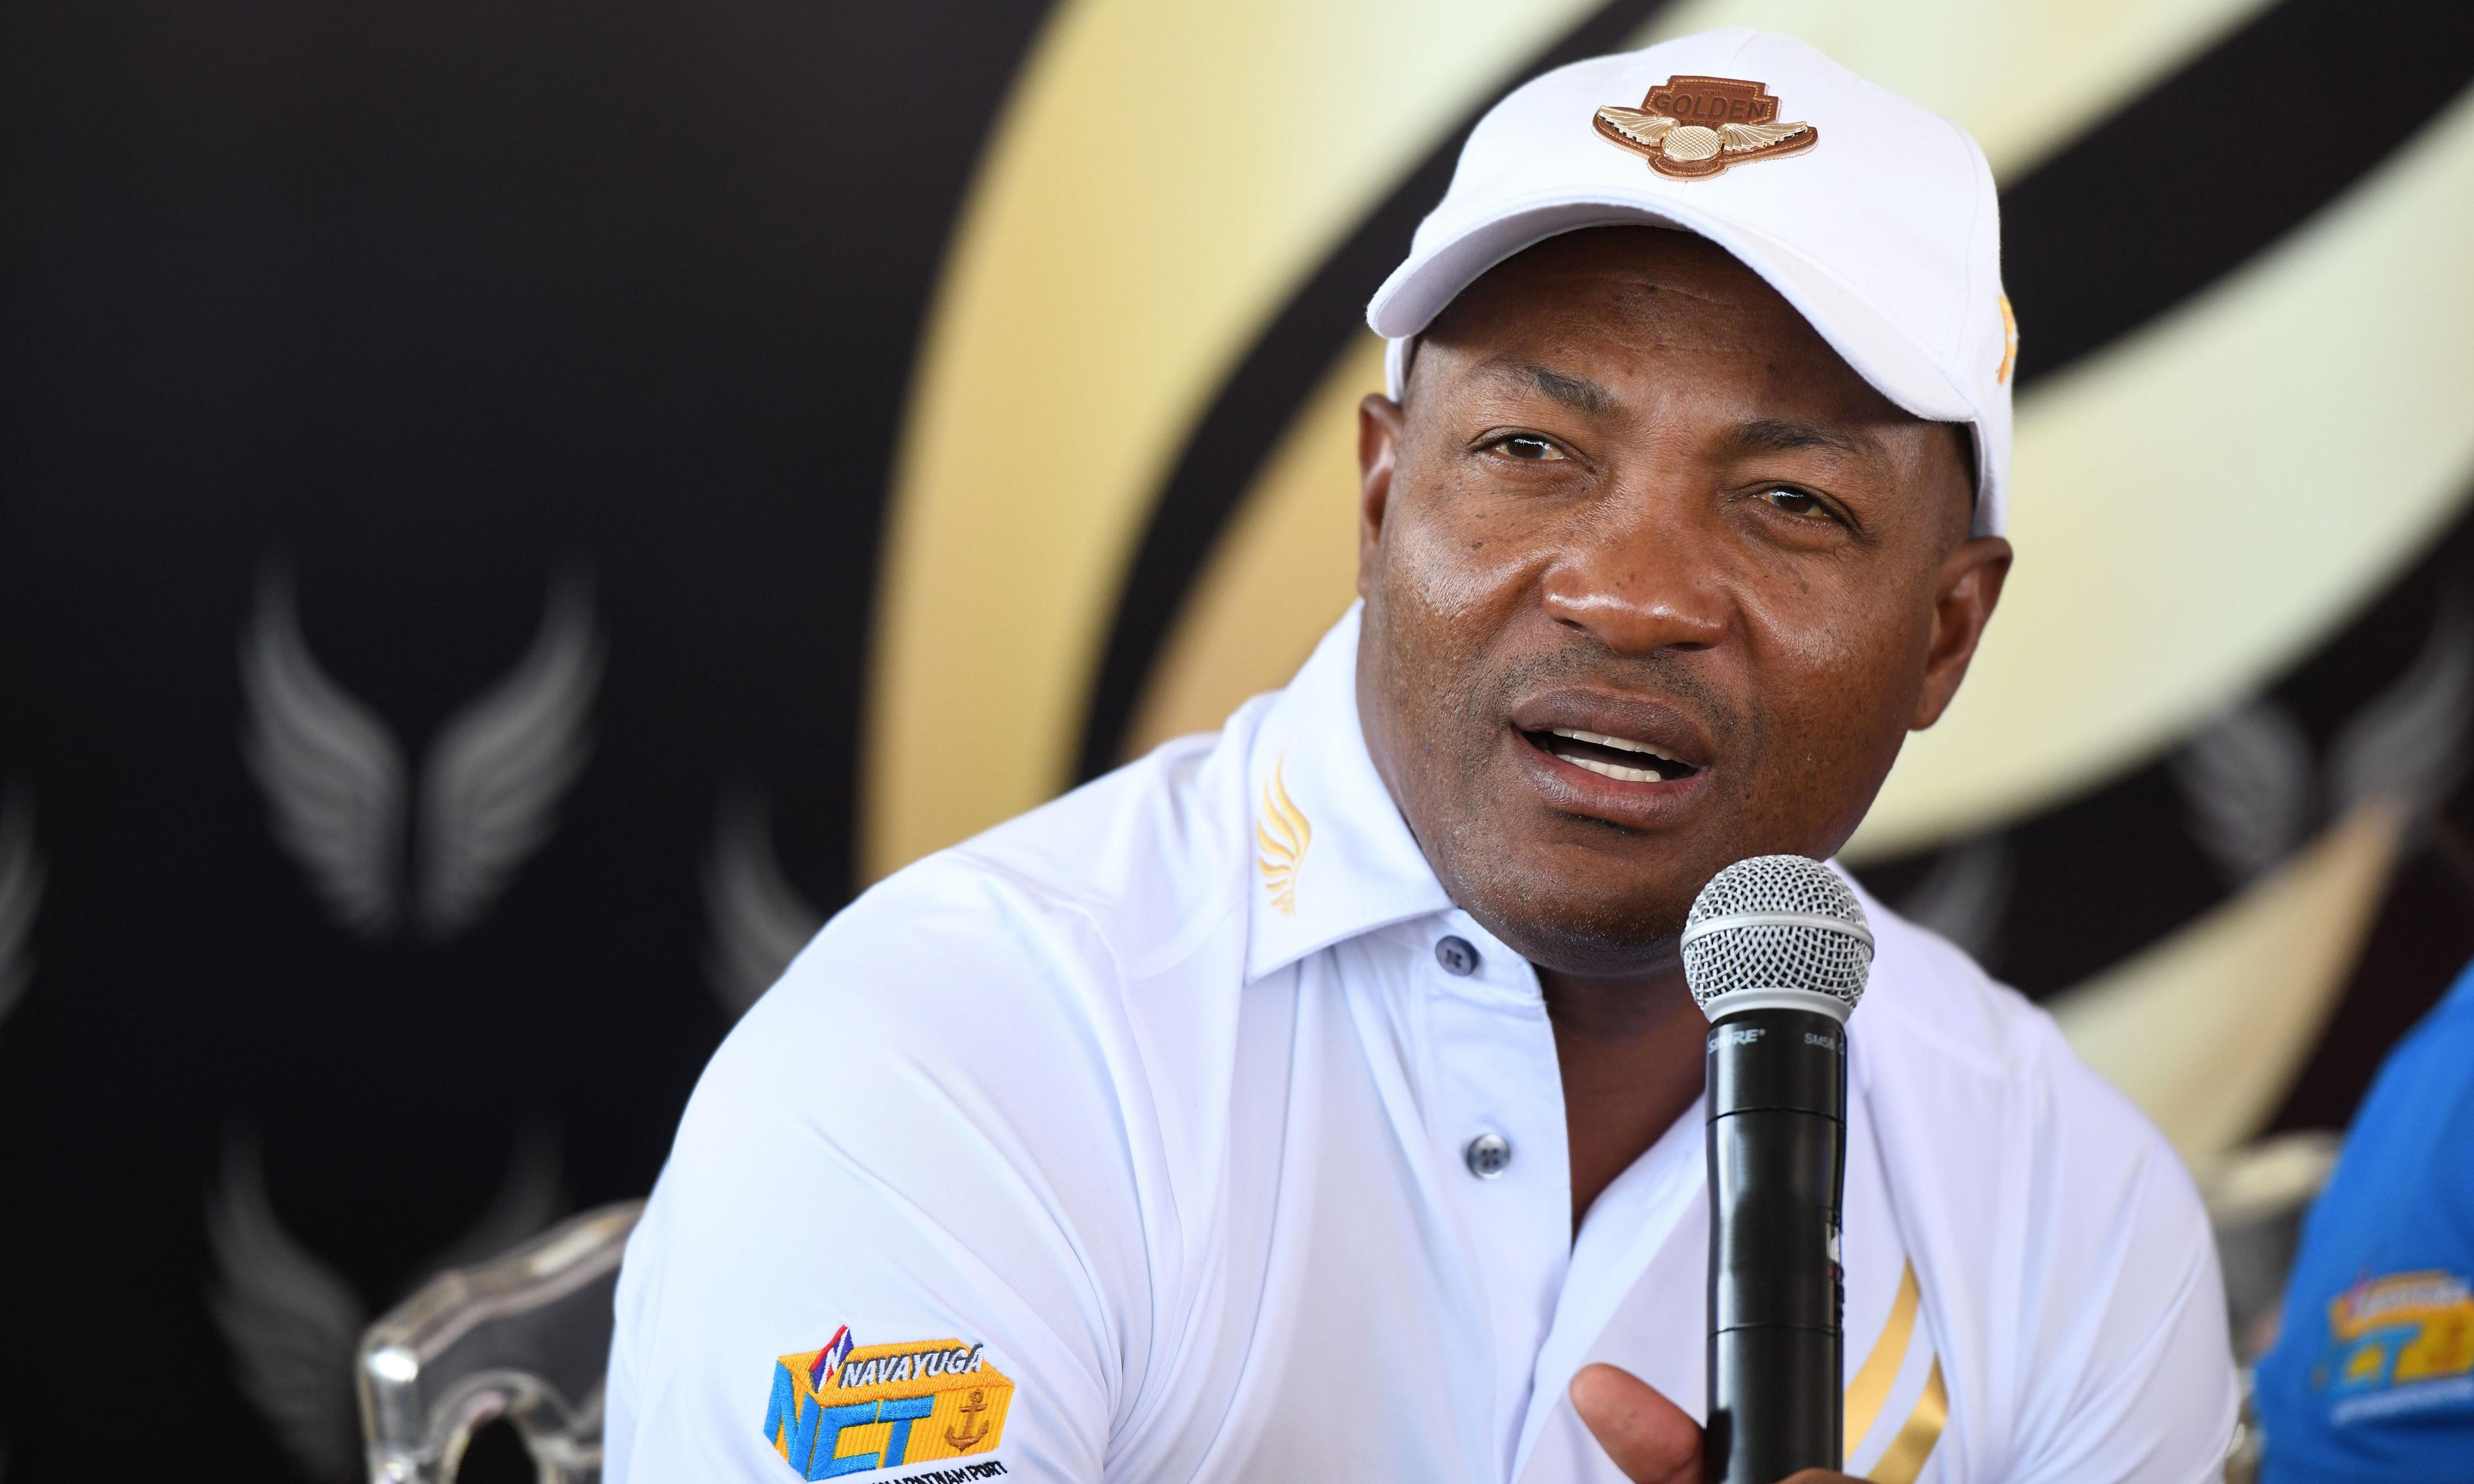 Brian Lara in hospital after chest pains but says he is fine